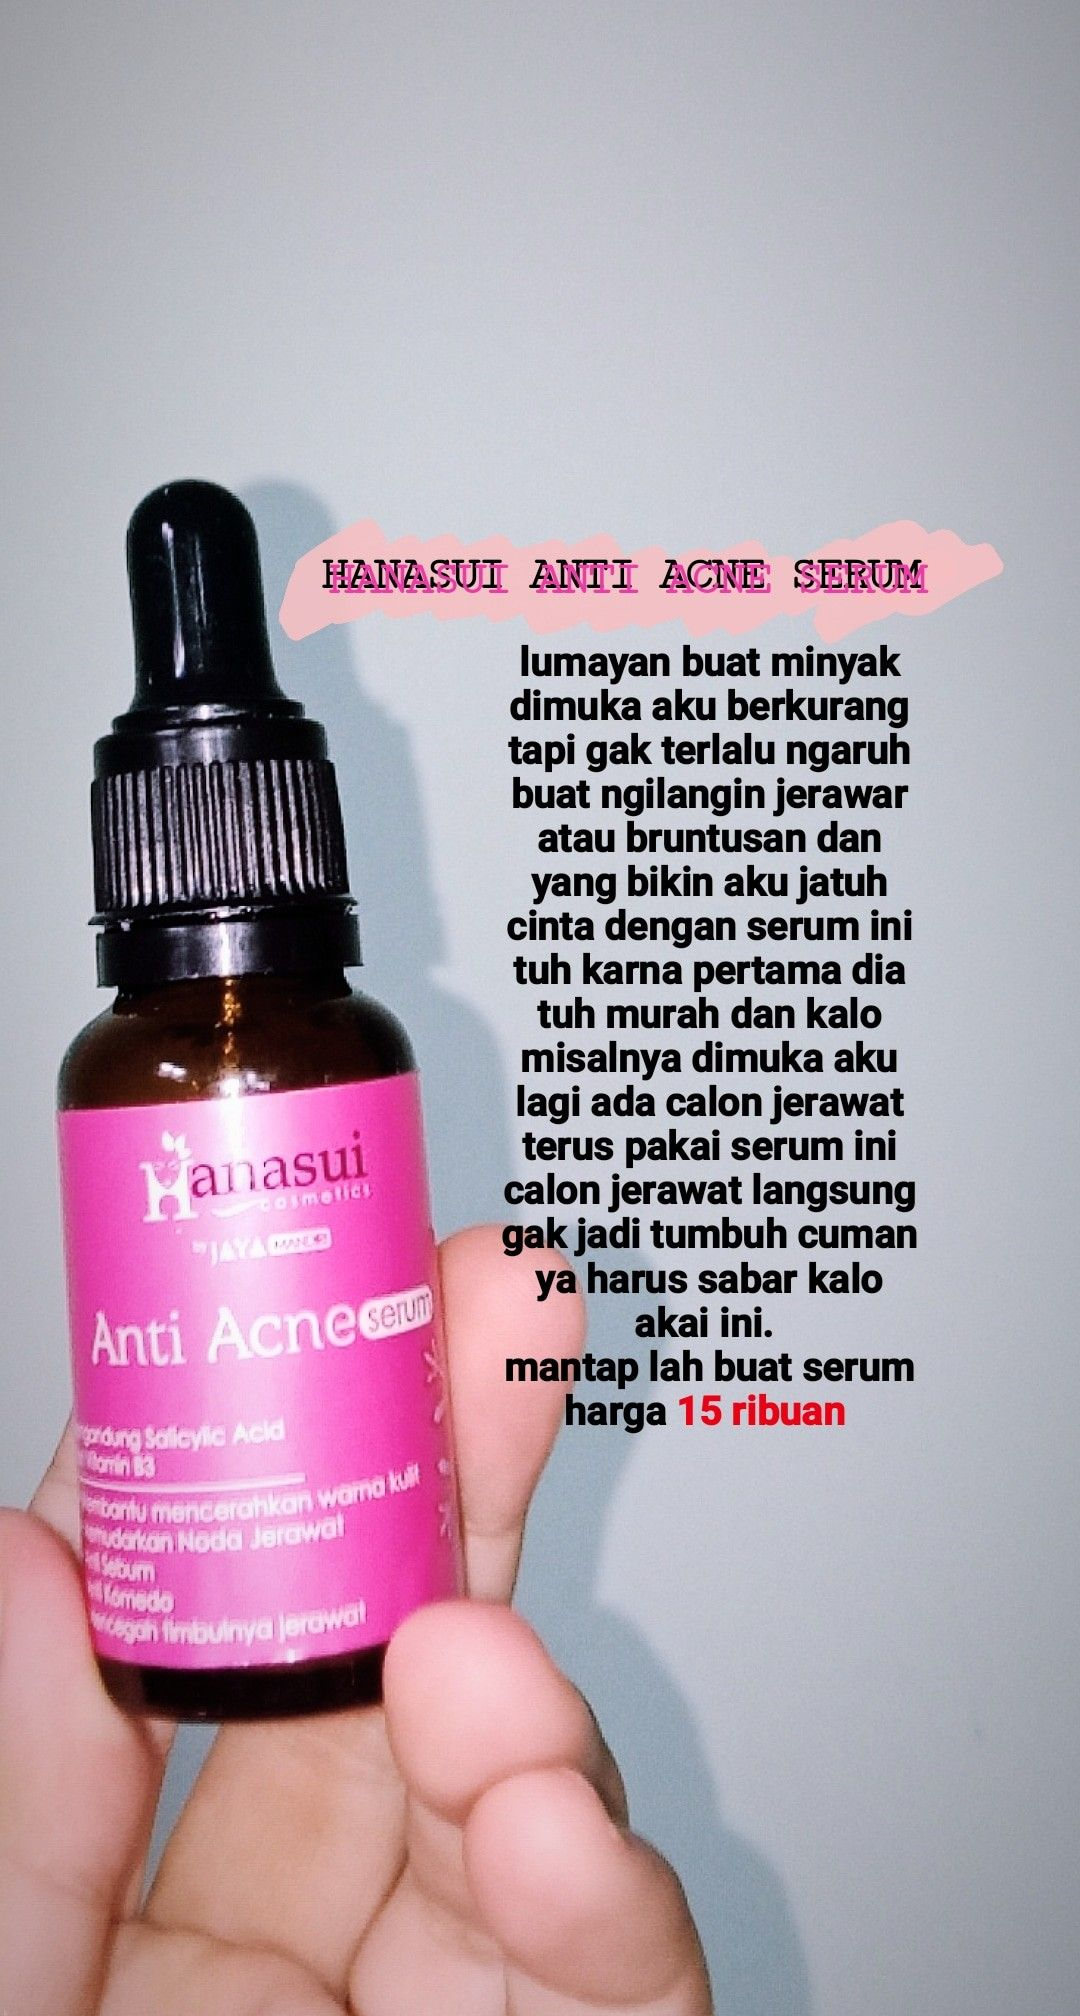 Review Hanasui Serum : review, hanasui, serum, Review, Perawatan, Kulit,, Produk, Jerawat